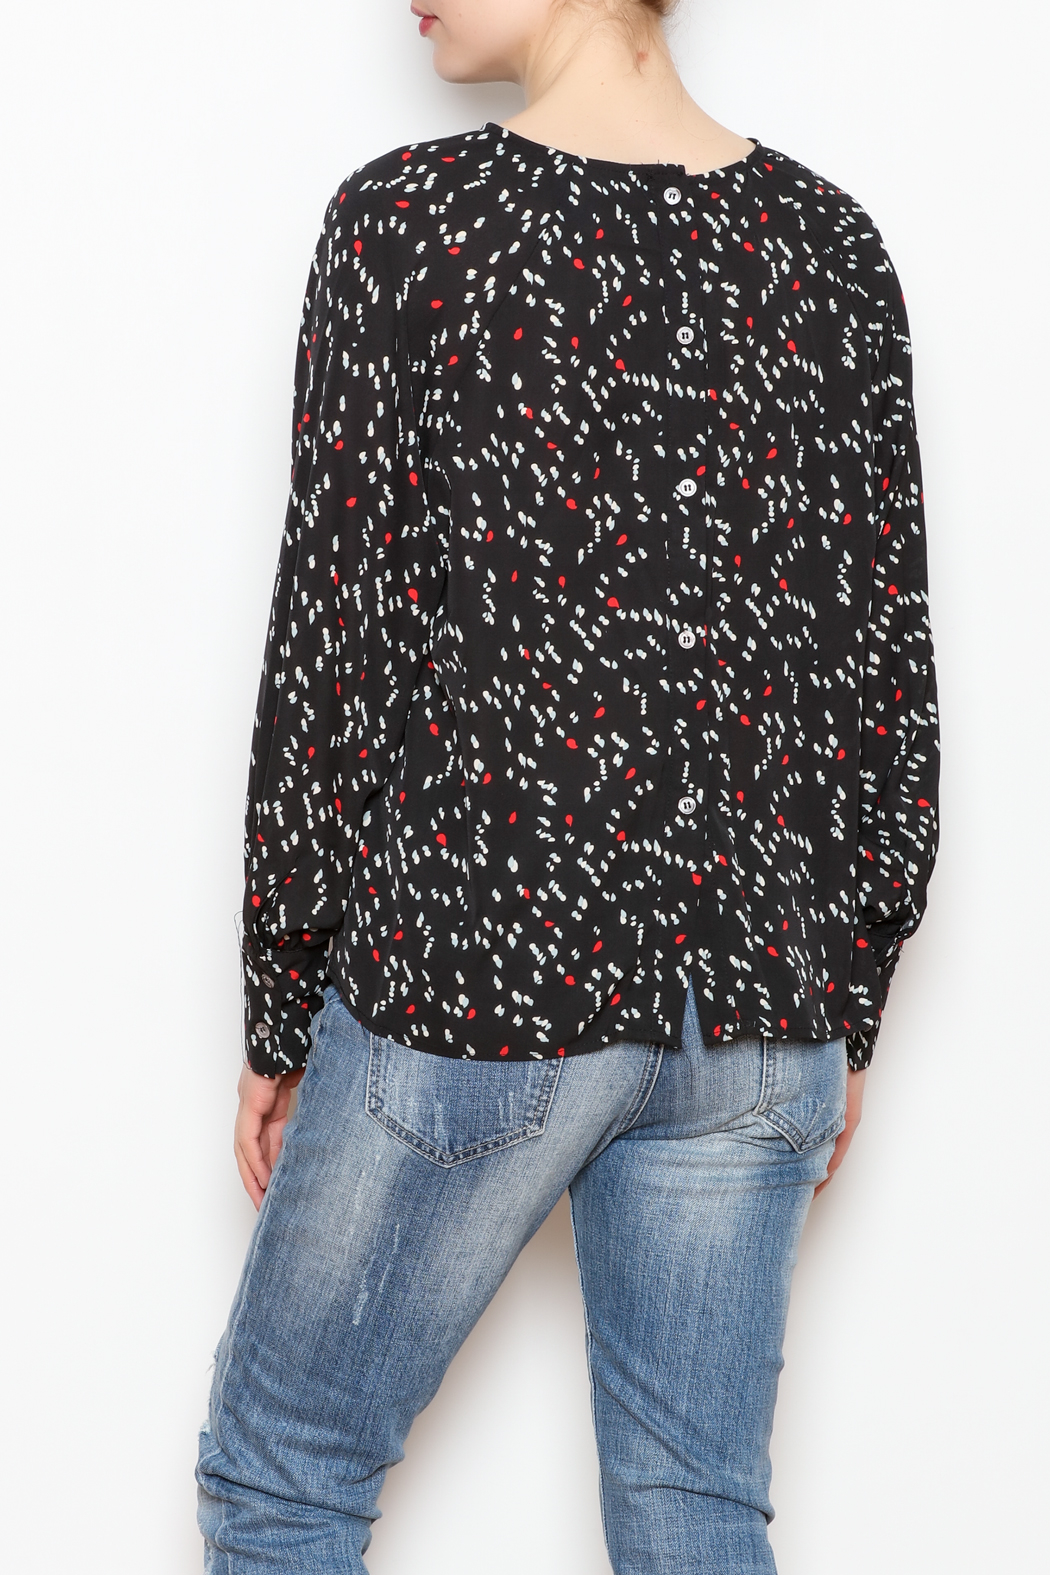 NU New York Back Button Printed Blouse - Back Cropped Image